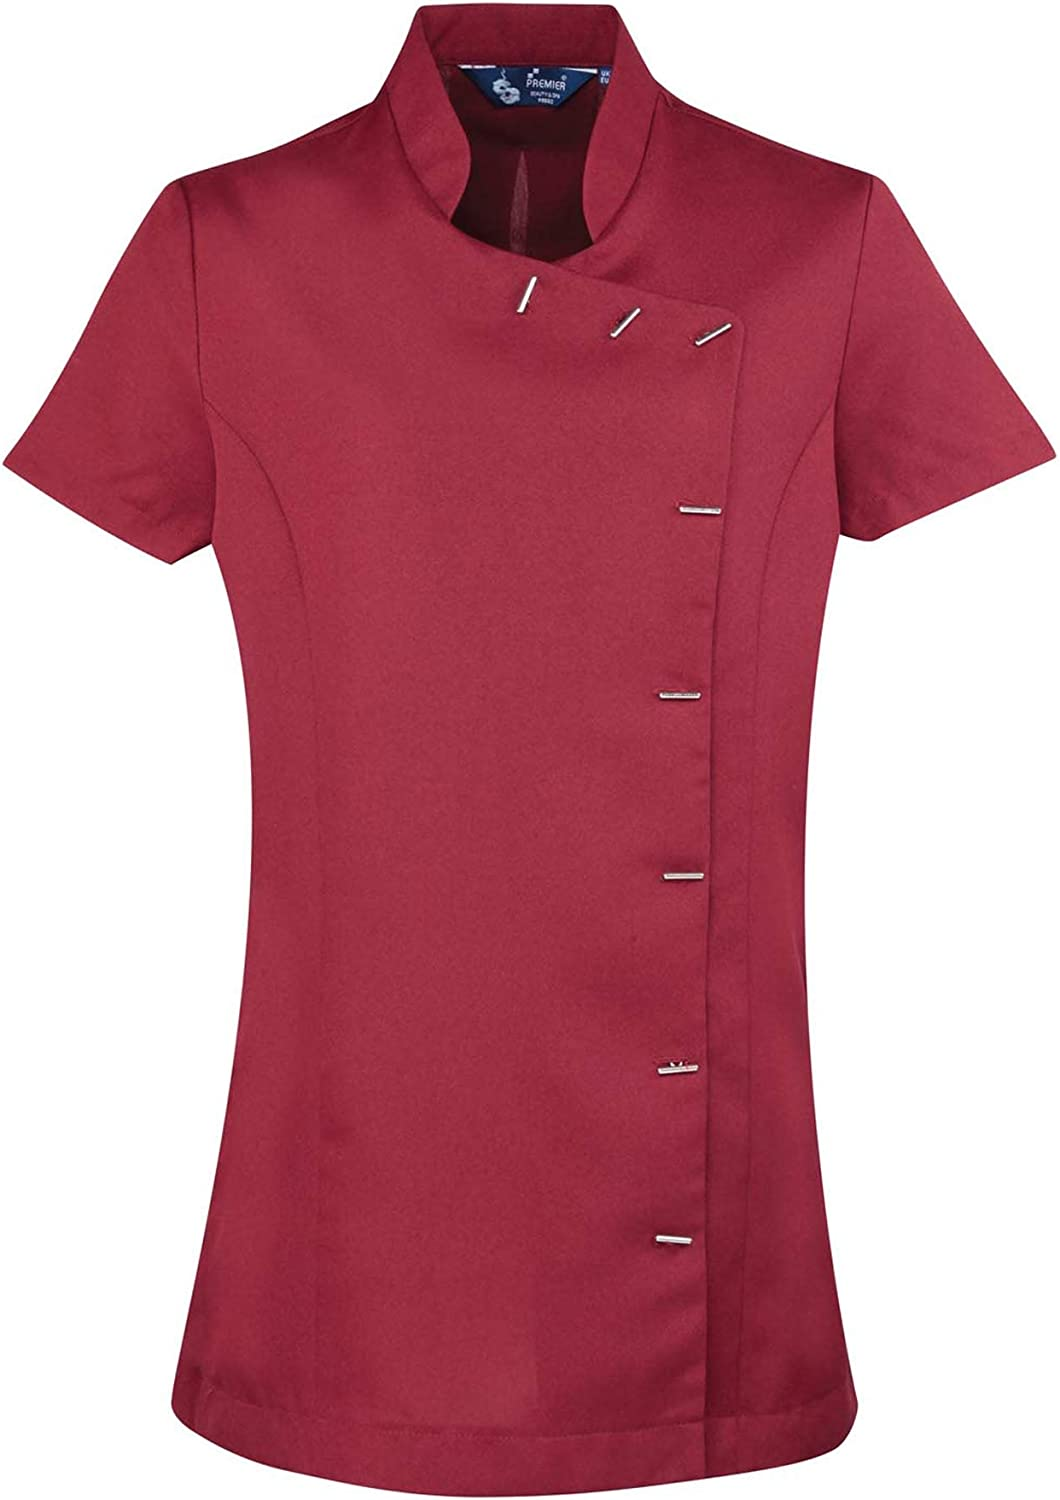 Premier PR682 Orchid Beauty and spa Tunic Blank Plain